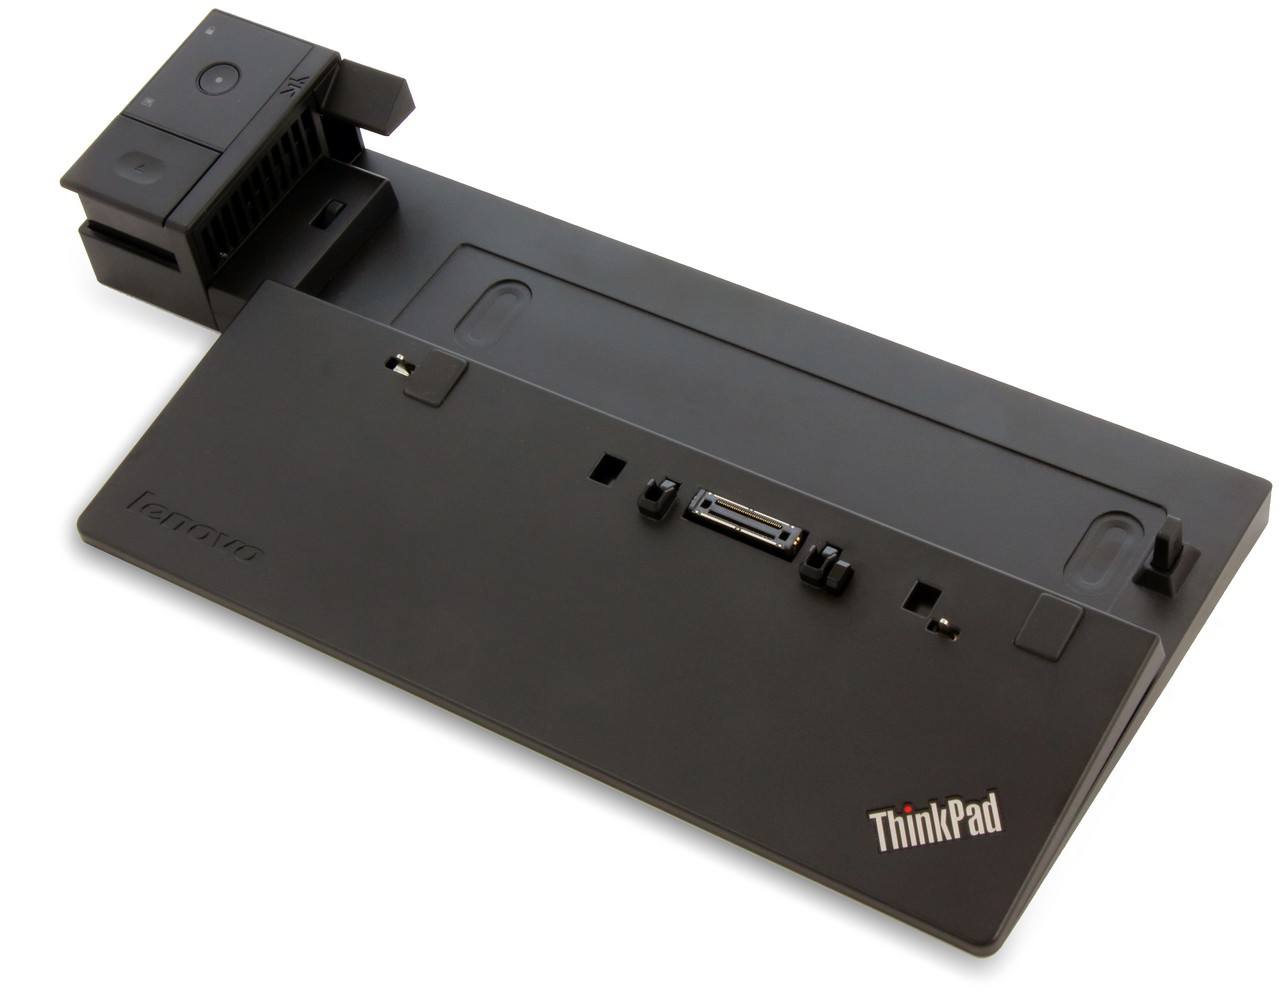 LENOVO 40A20135DK THINKPAD ULTRA DOCK - 135W USB 3.0 (3.1 GEN 1) TYPE-A BLACK